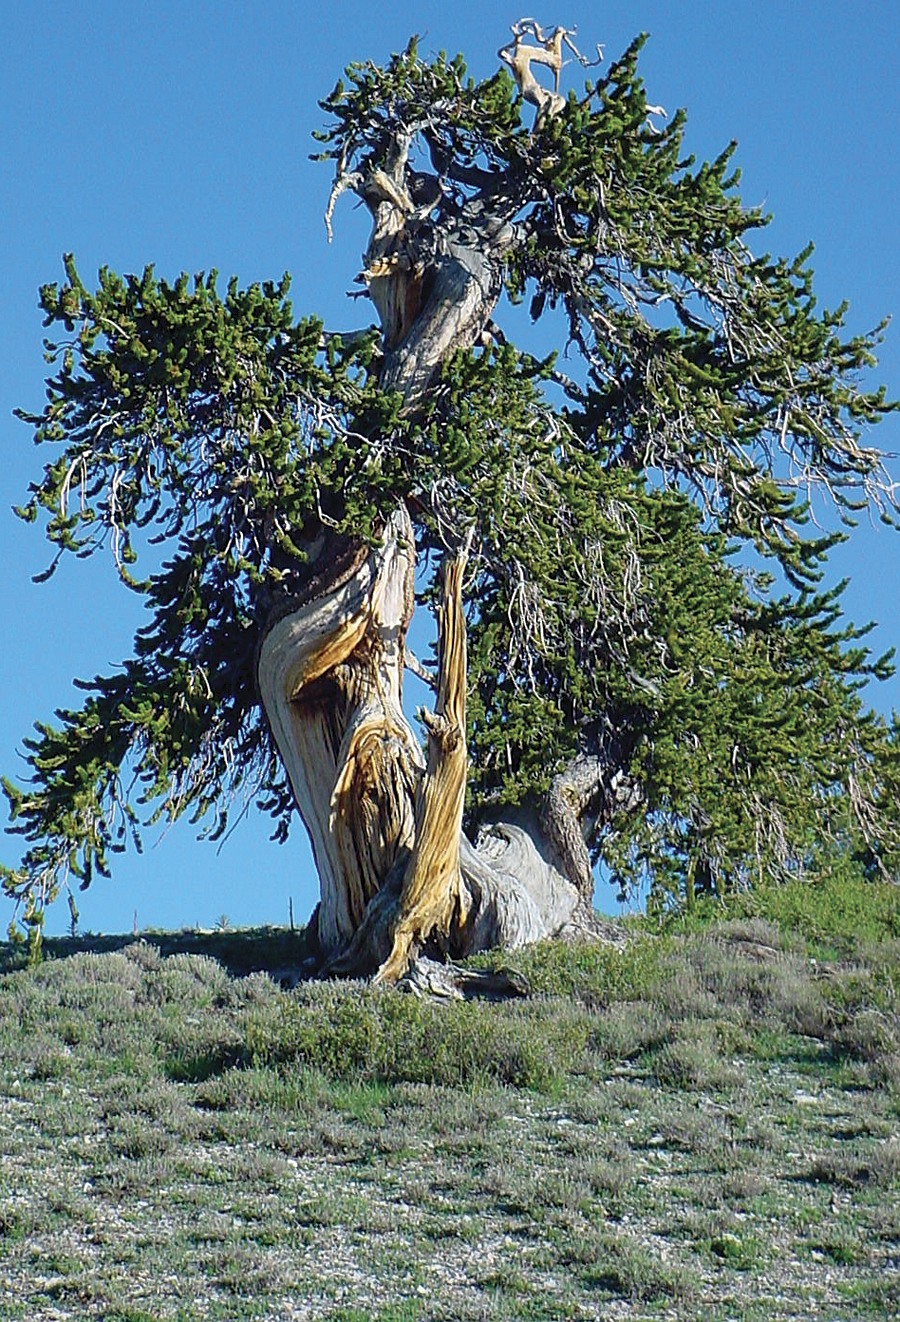 This ancient bristlecone pine (Pinus longaeva) growing near the top of Mount Washington in the Snake Mountain Range in Nevada is very near the upper elevational limit of growth for the species. It is trees like this whose ring-width records reflect past variability in temperature.